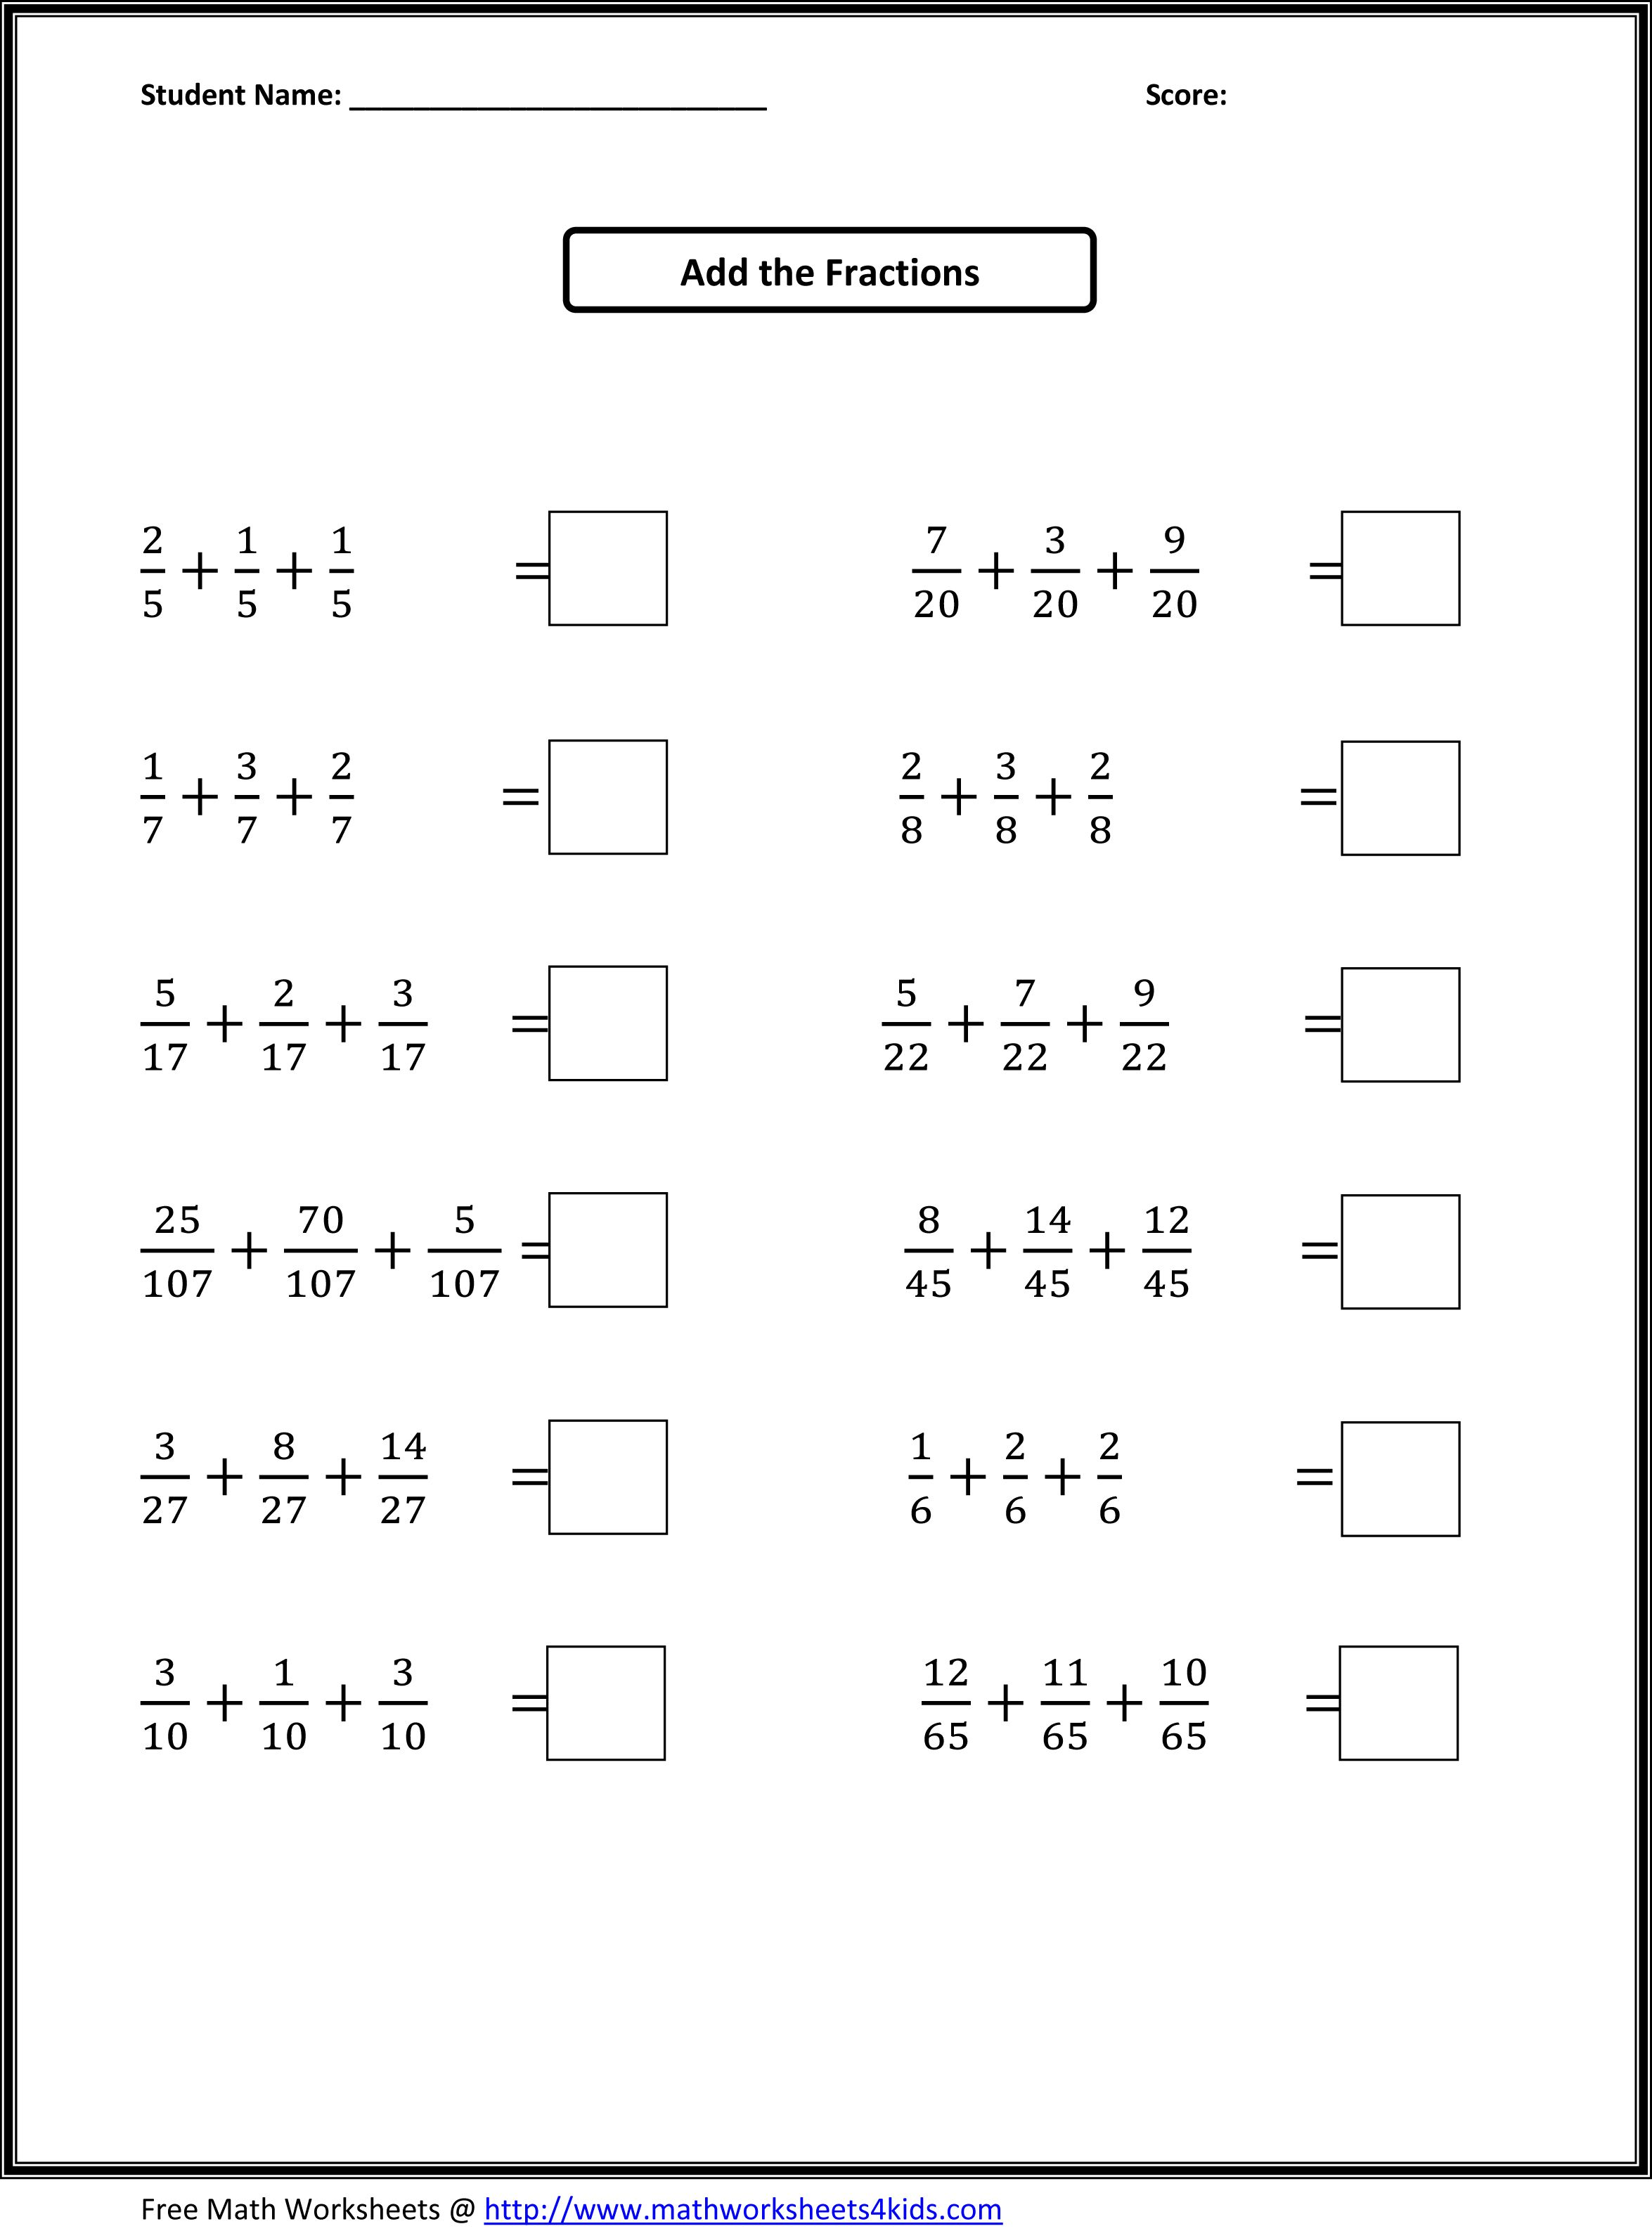 math worksheet : fractions easy work and math worksheets on pinterest : Fractions Year 3 Worksheets